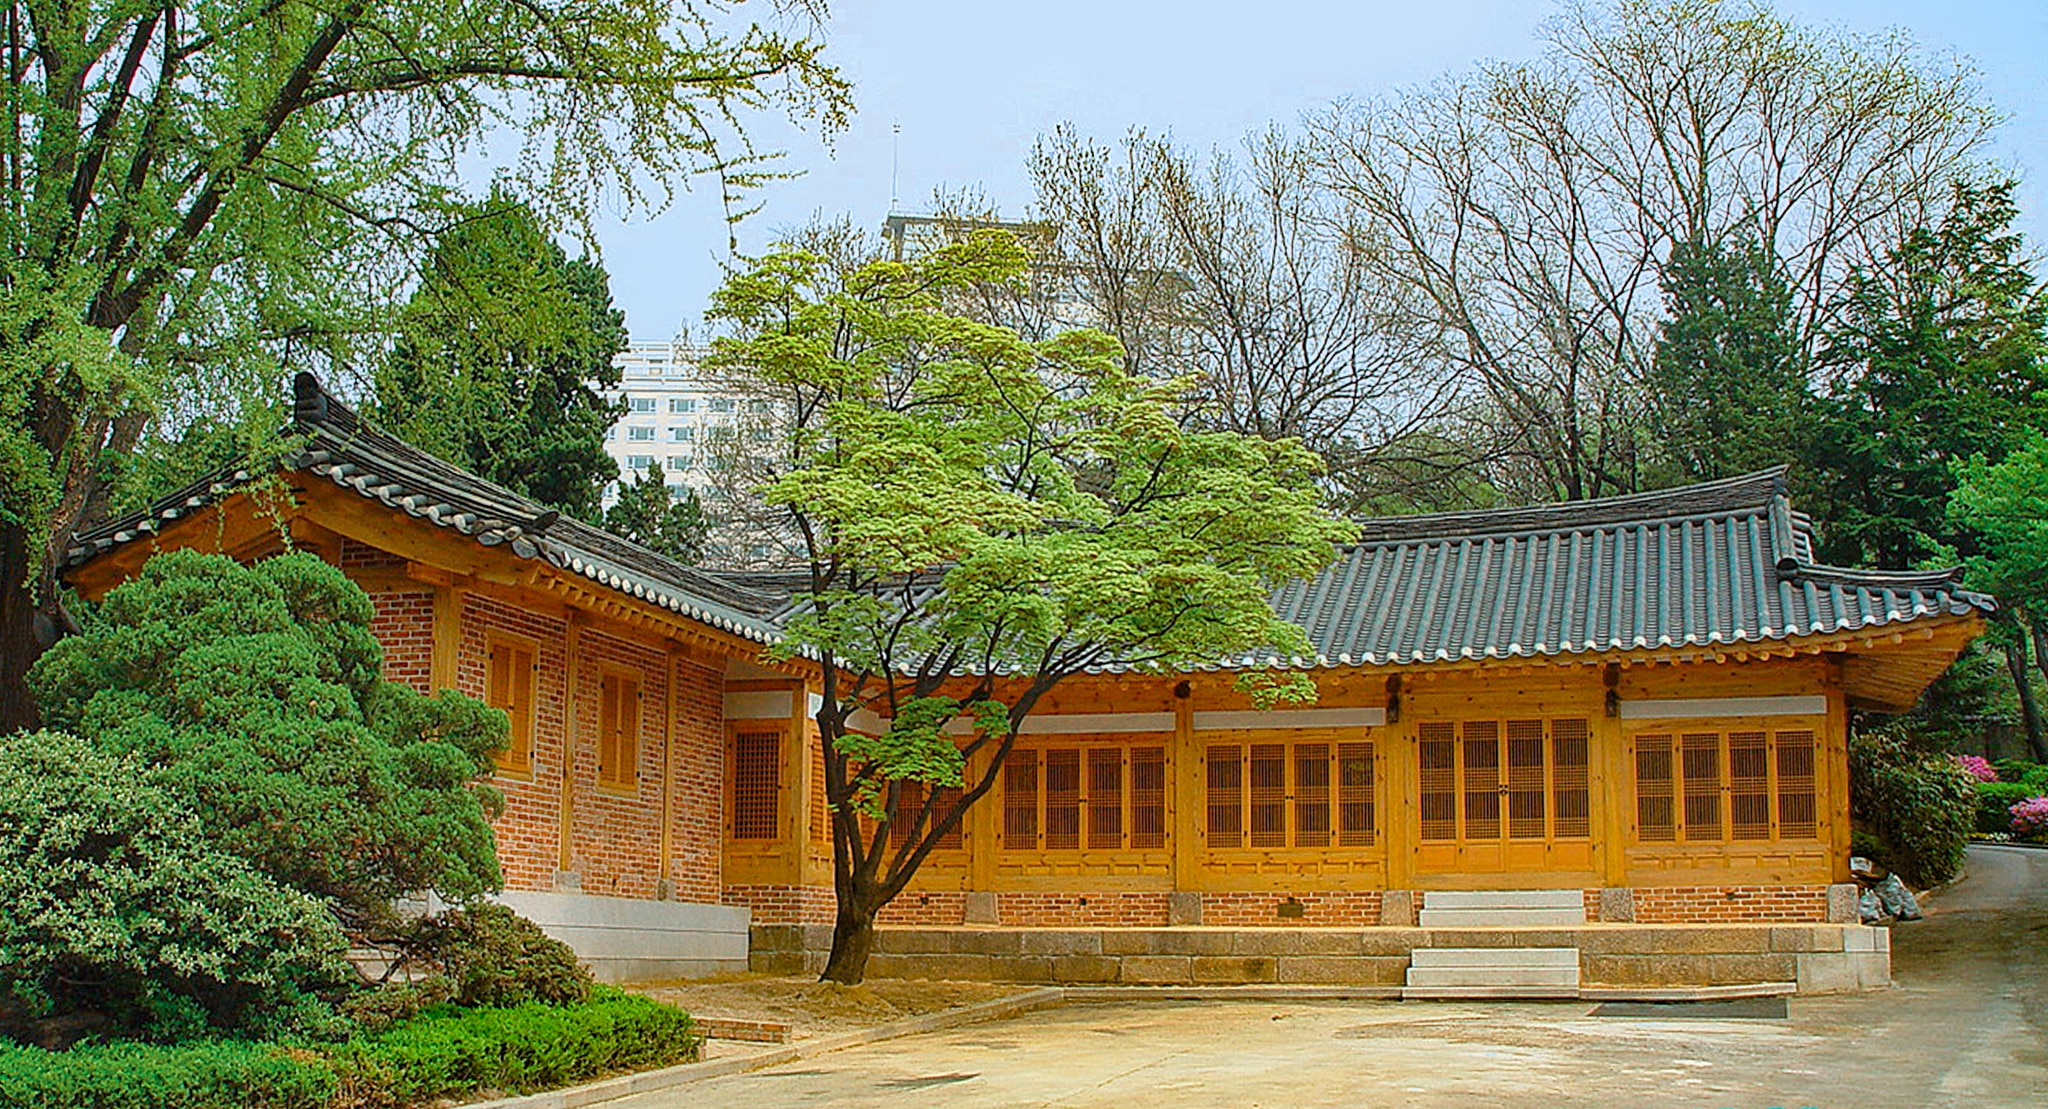 Building with with sloping Asian roof, brick walls and tall, wood-framed windows (State Dept.)